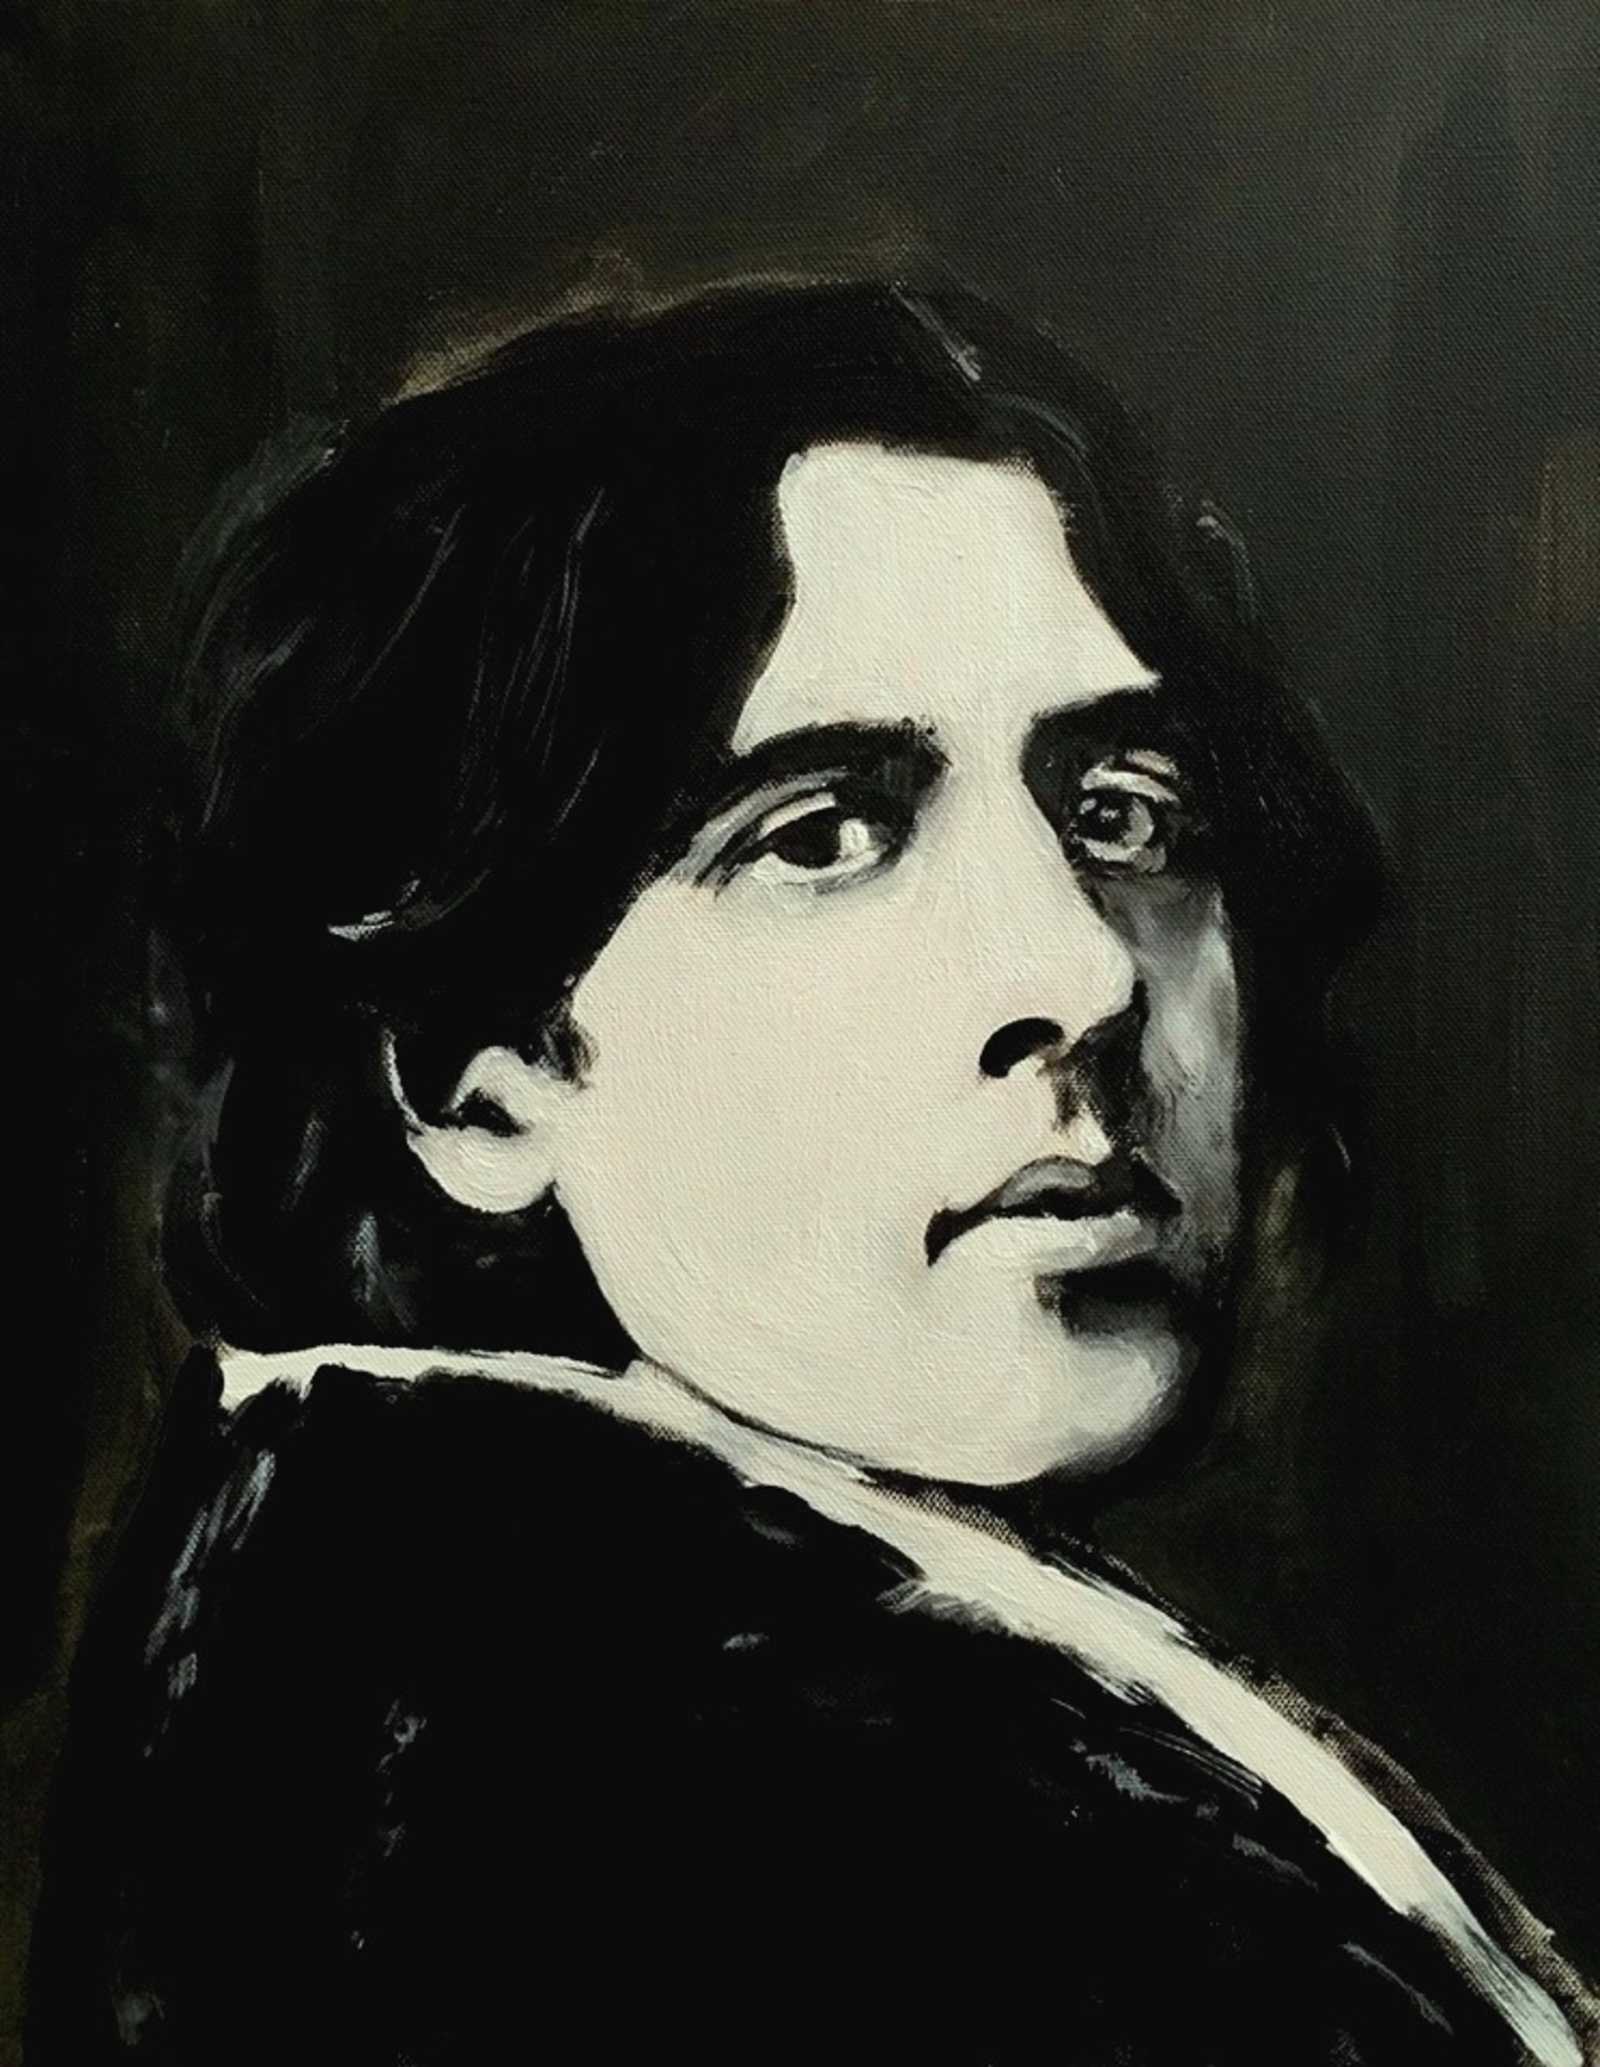 De Profundis (a portrait of Oscar Wilde)